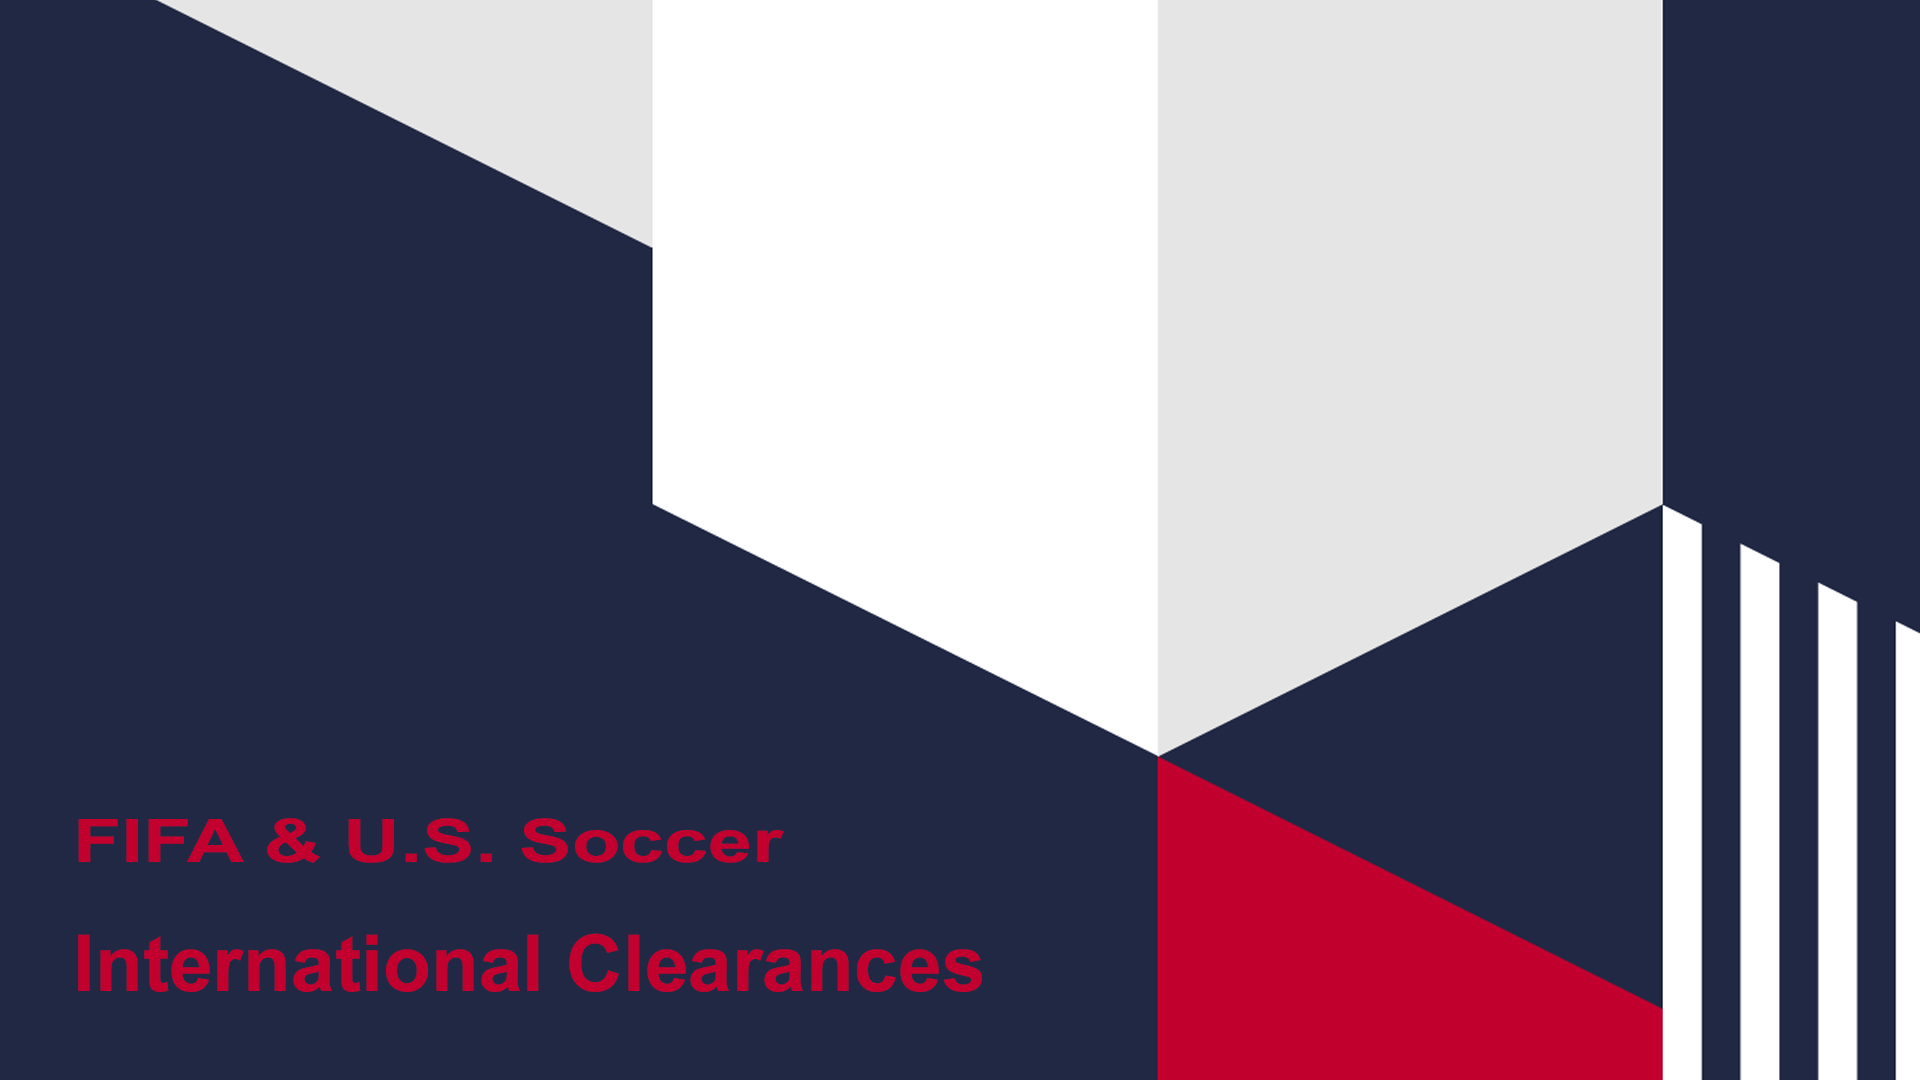 FIFA's International Clearance Process